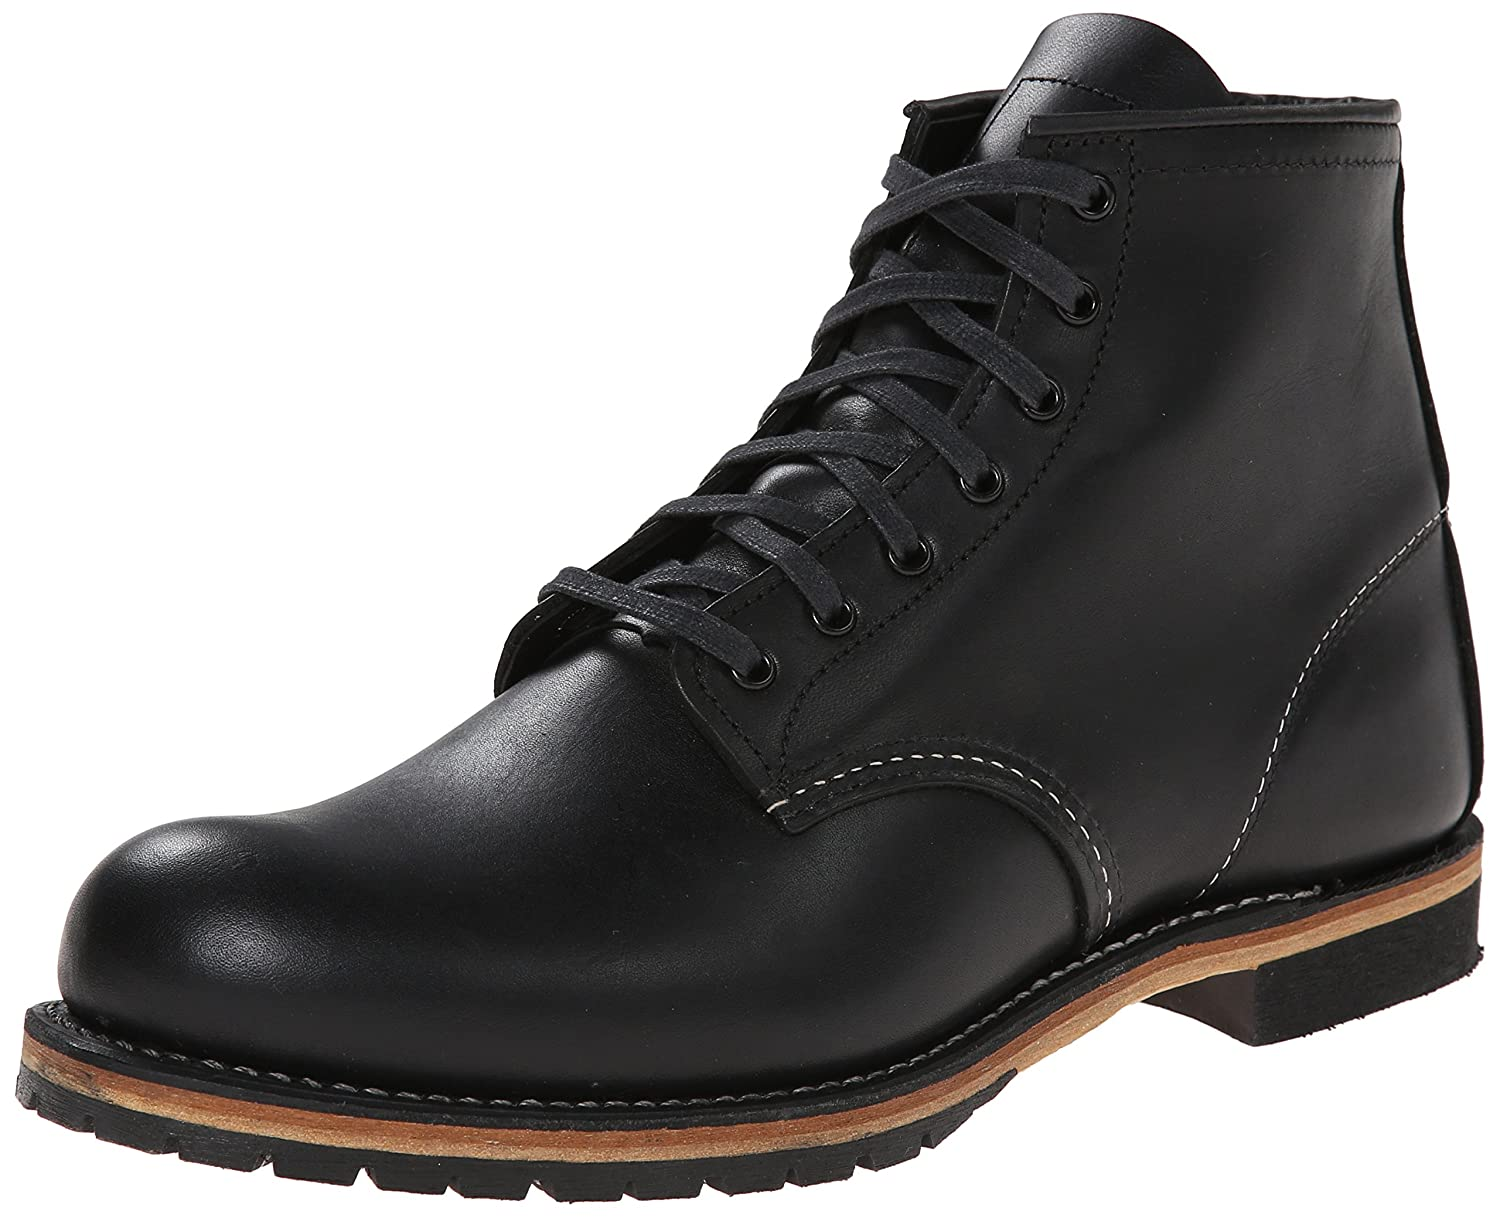 Mens Vintage Style Shoes| Retro Classic Shoes Red Wing Heritage Beckman Round 6 Boot $360.00 AT vintagedancer.com